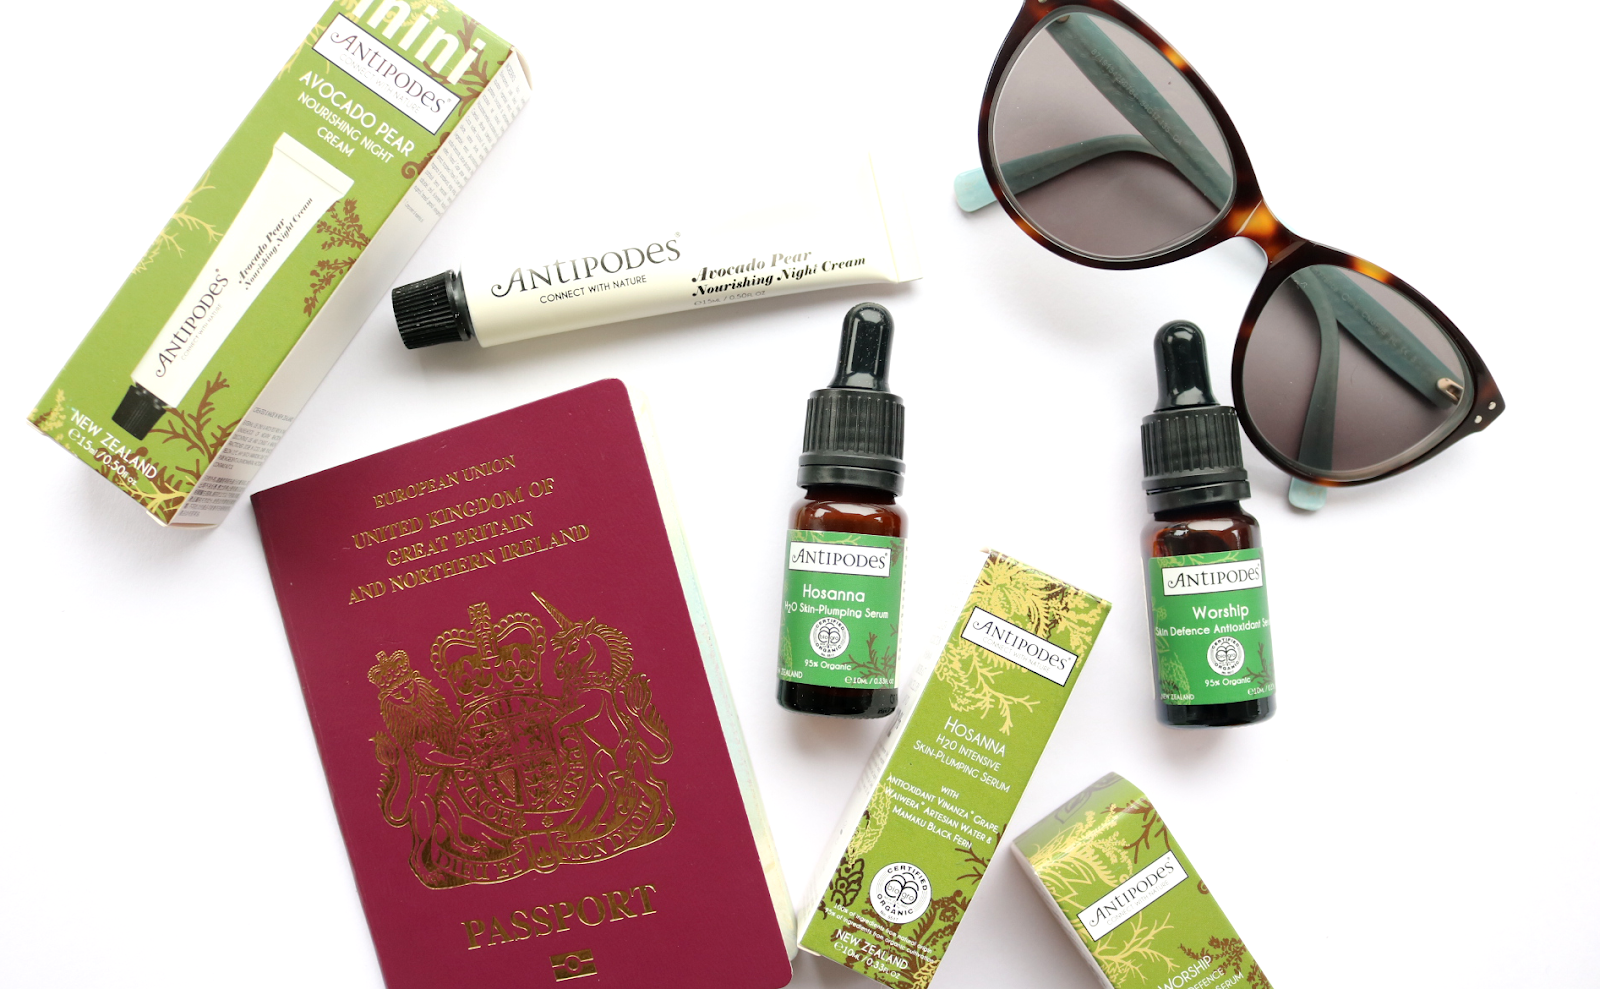 Travel Size Beauty: Plastic-Free Minis from Antipodes